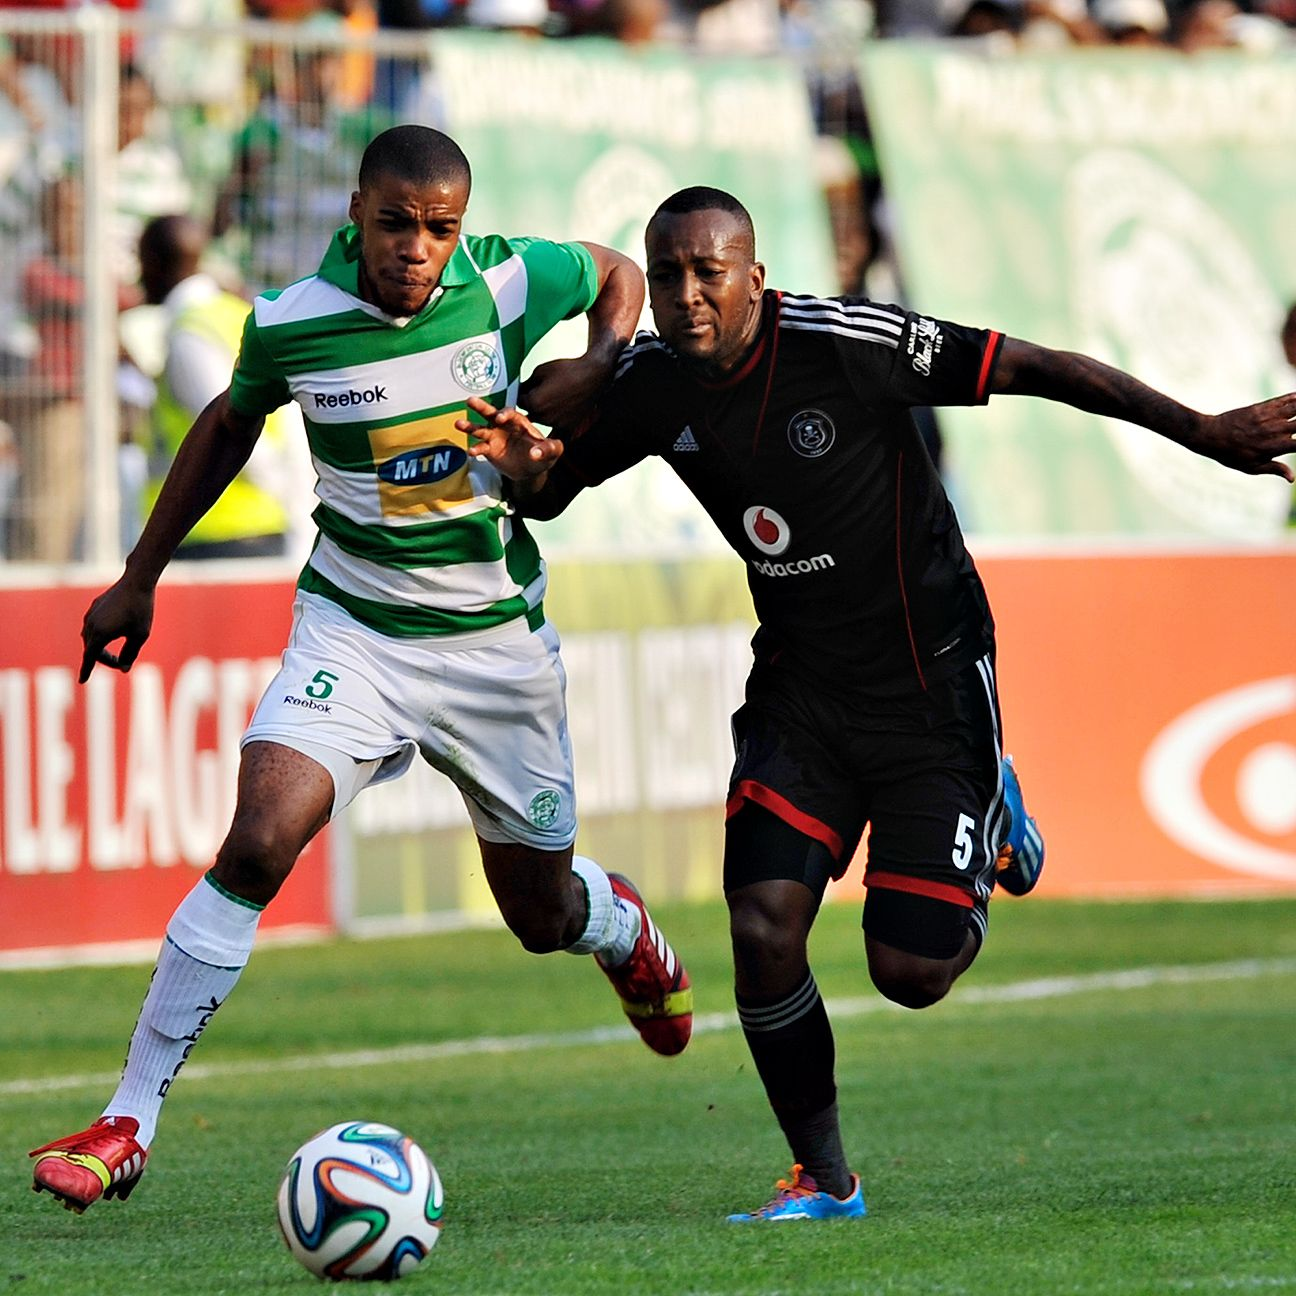 South Africa's Premier Division, home to Bloemfontein Celtic and Orlando Pirates, ranks as one of Africa's most-watched domestic leagues.